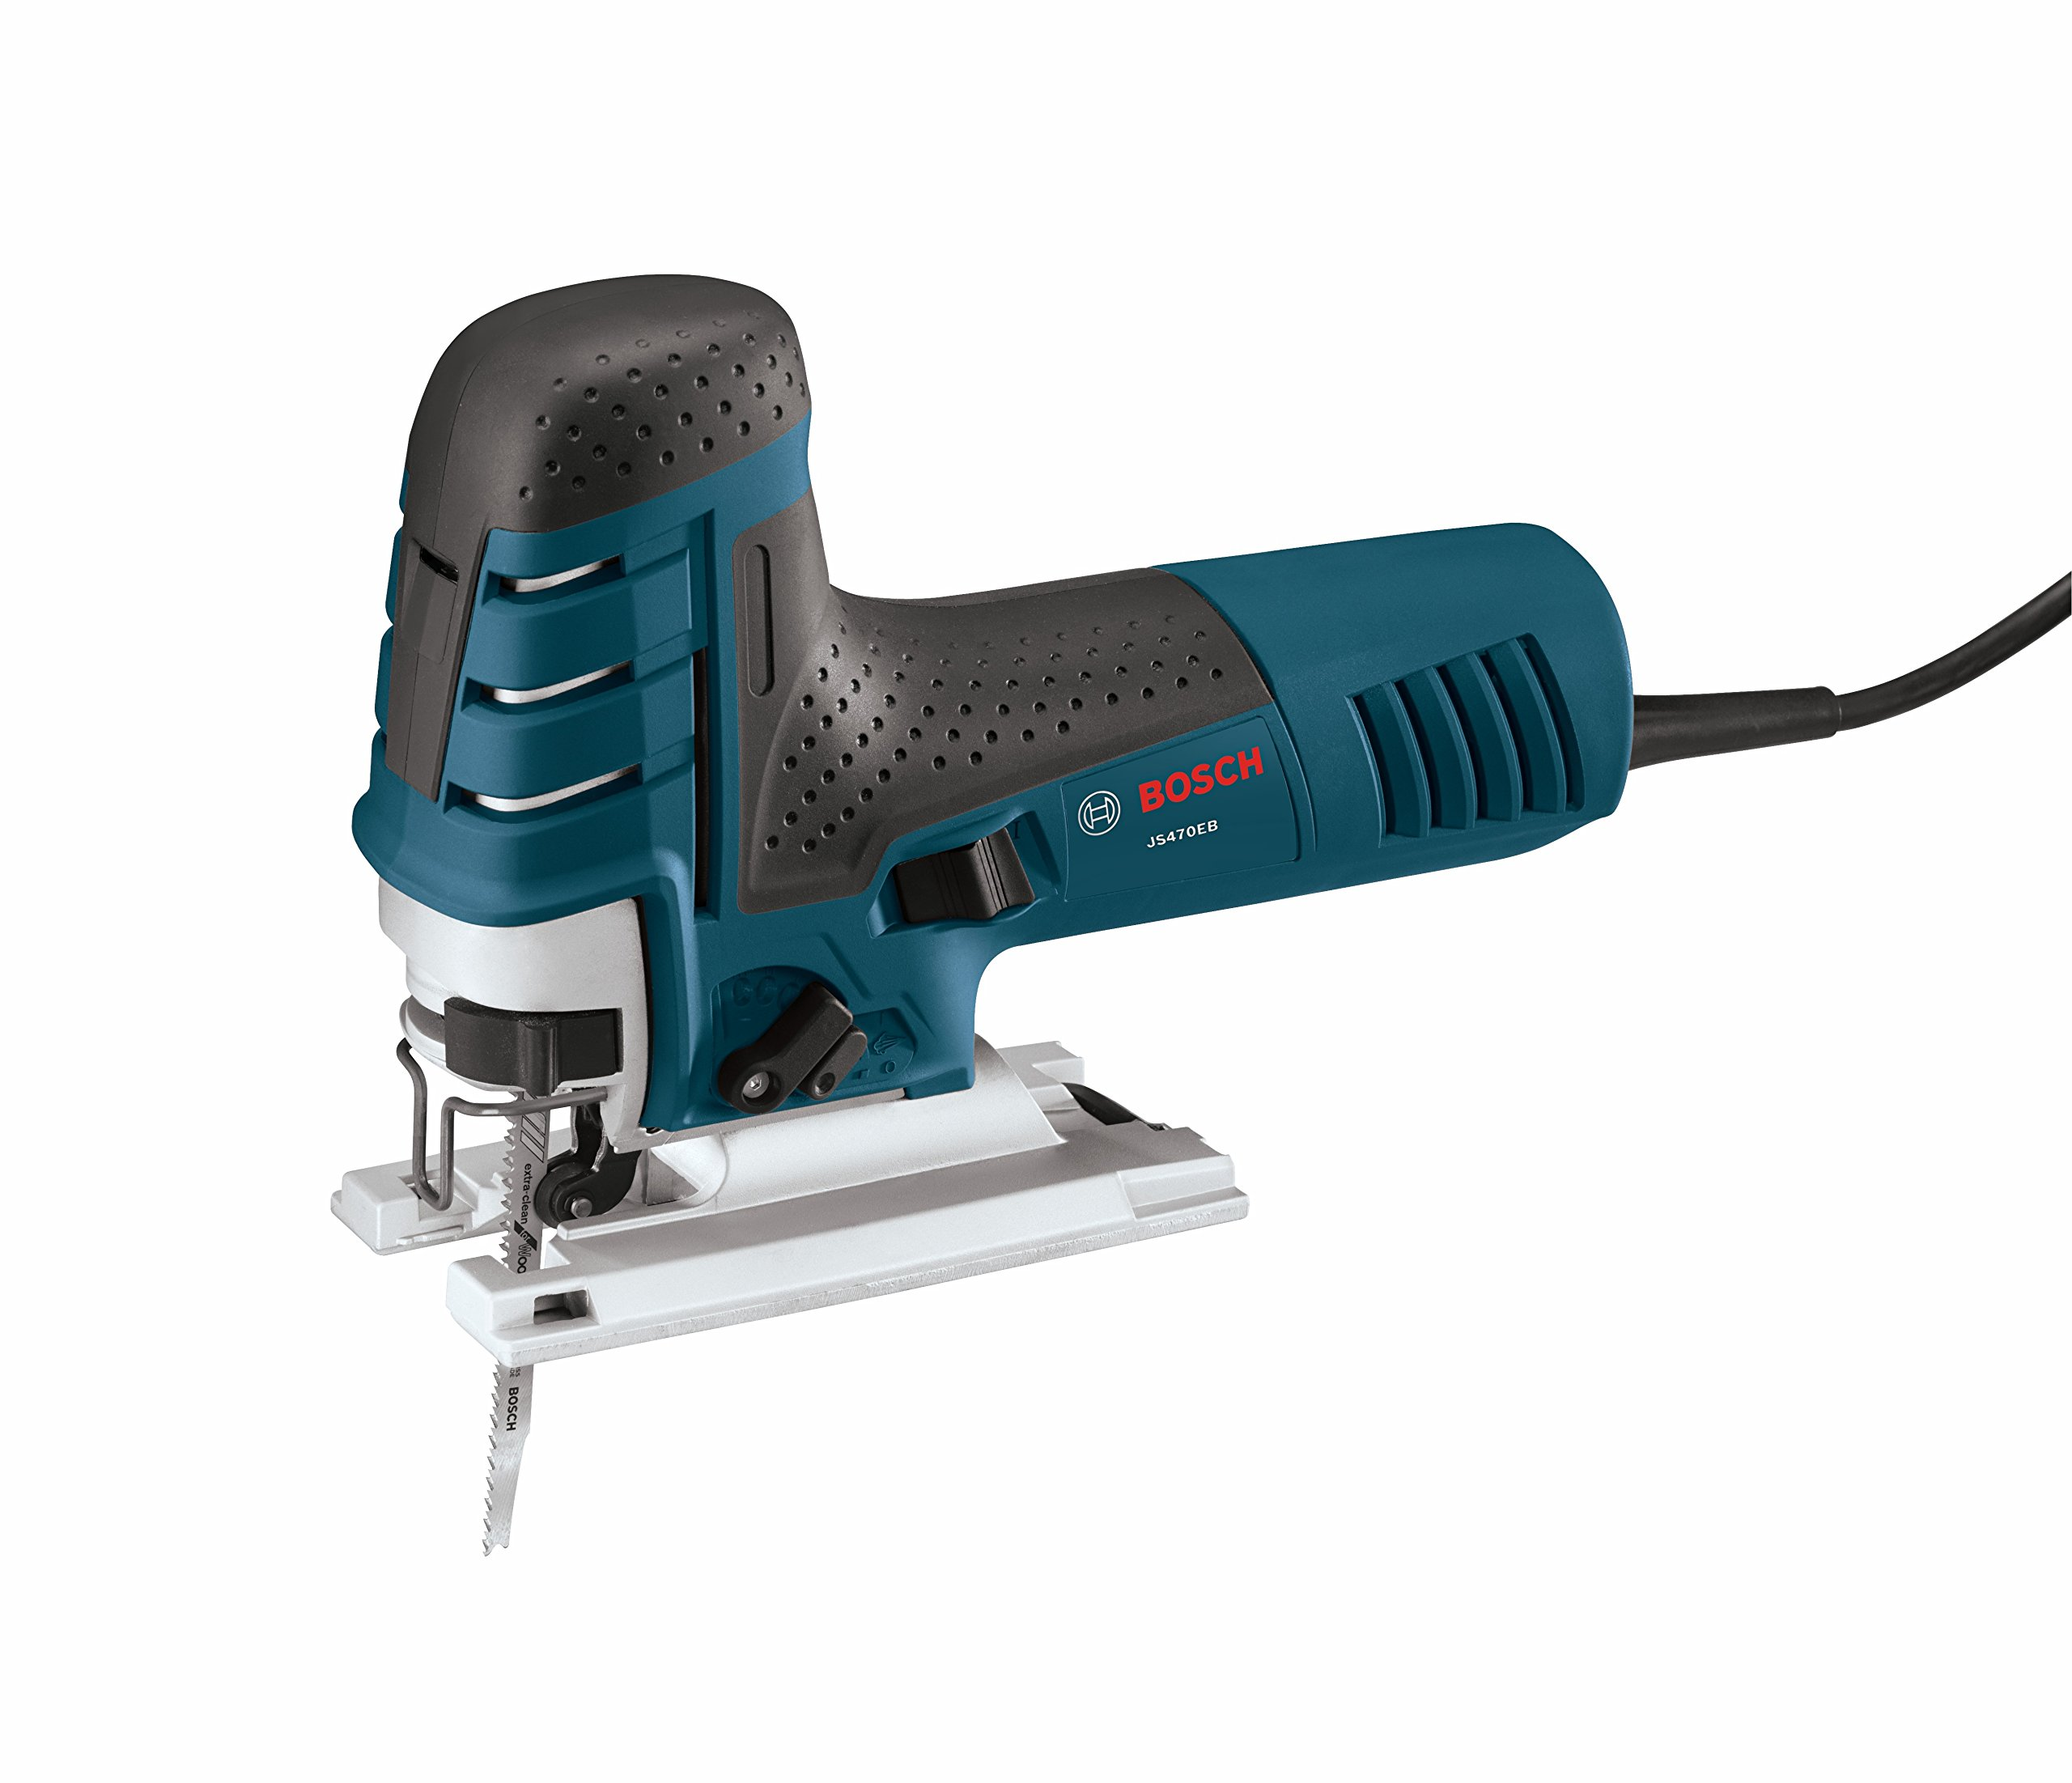 Bosch JS470EB 7 Amp Corded Variable Speed Barrel-Grip Jig Saw with Carrying Case by Bosch